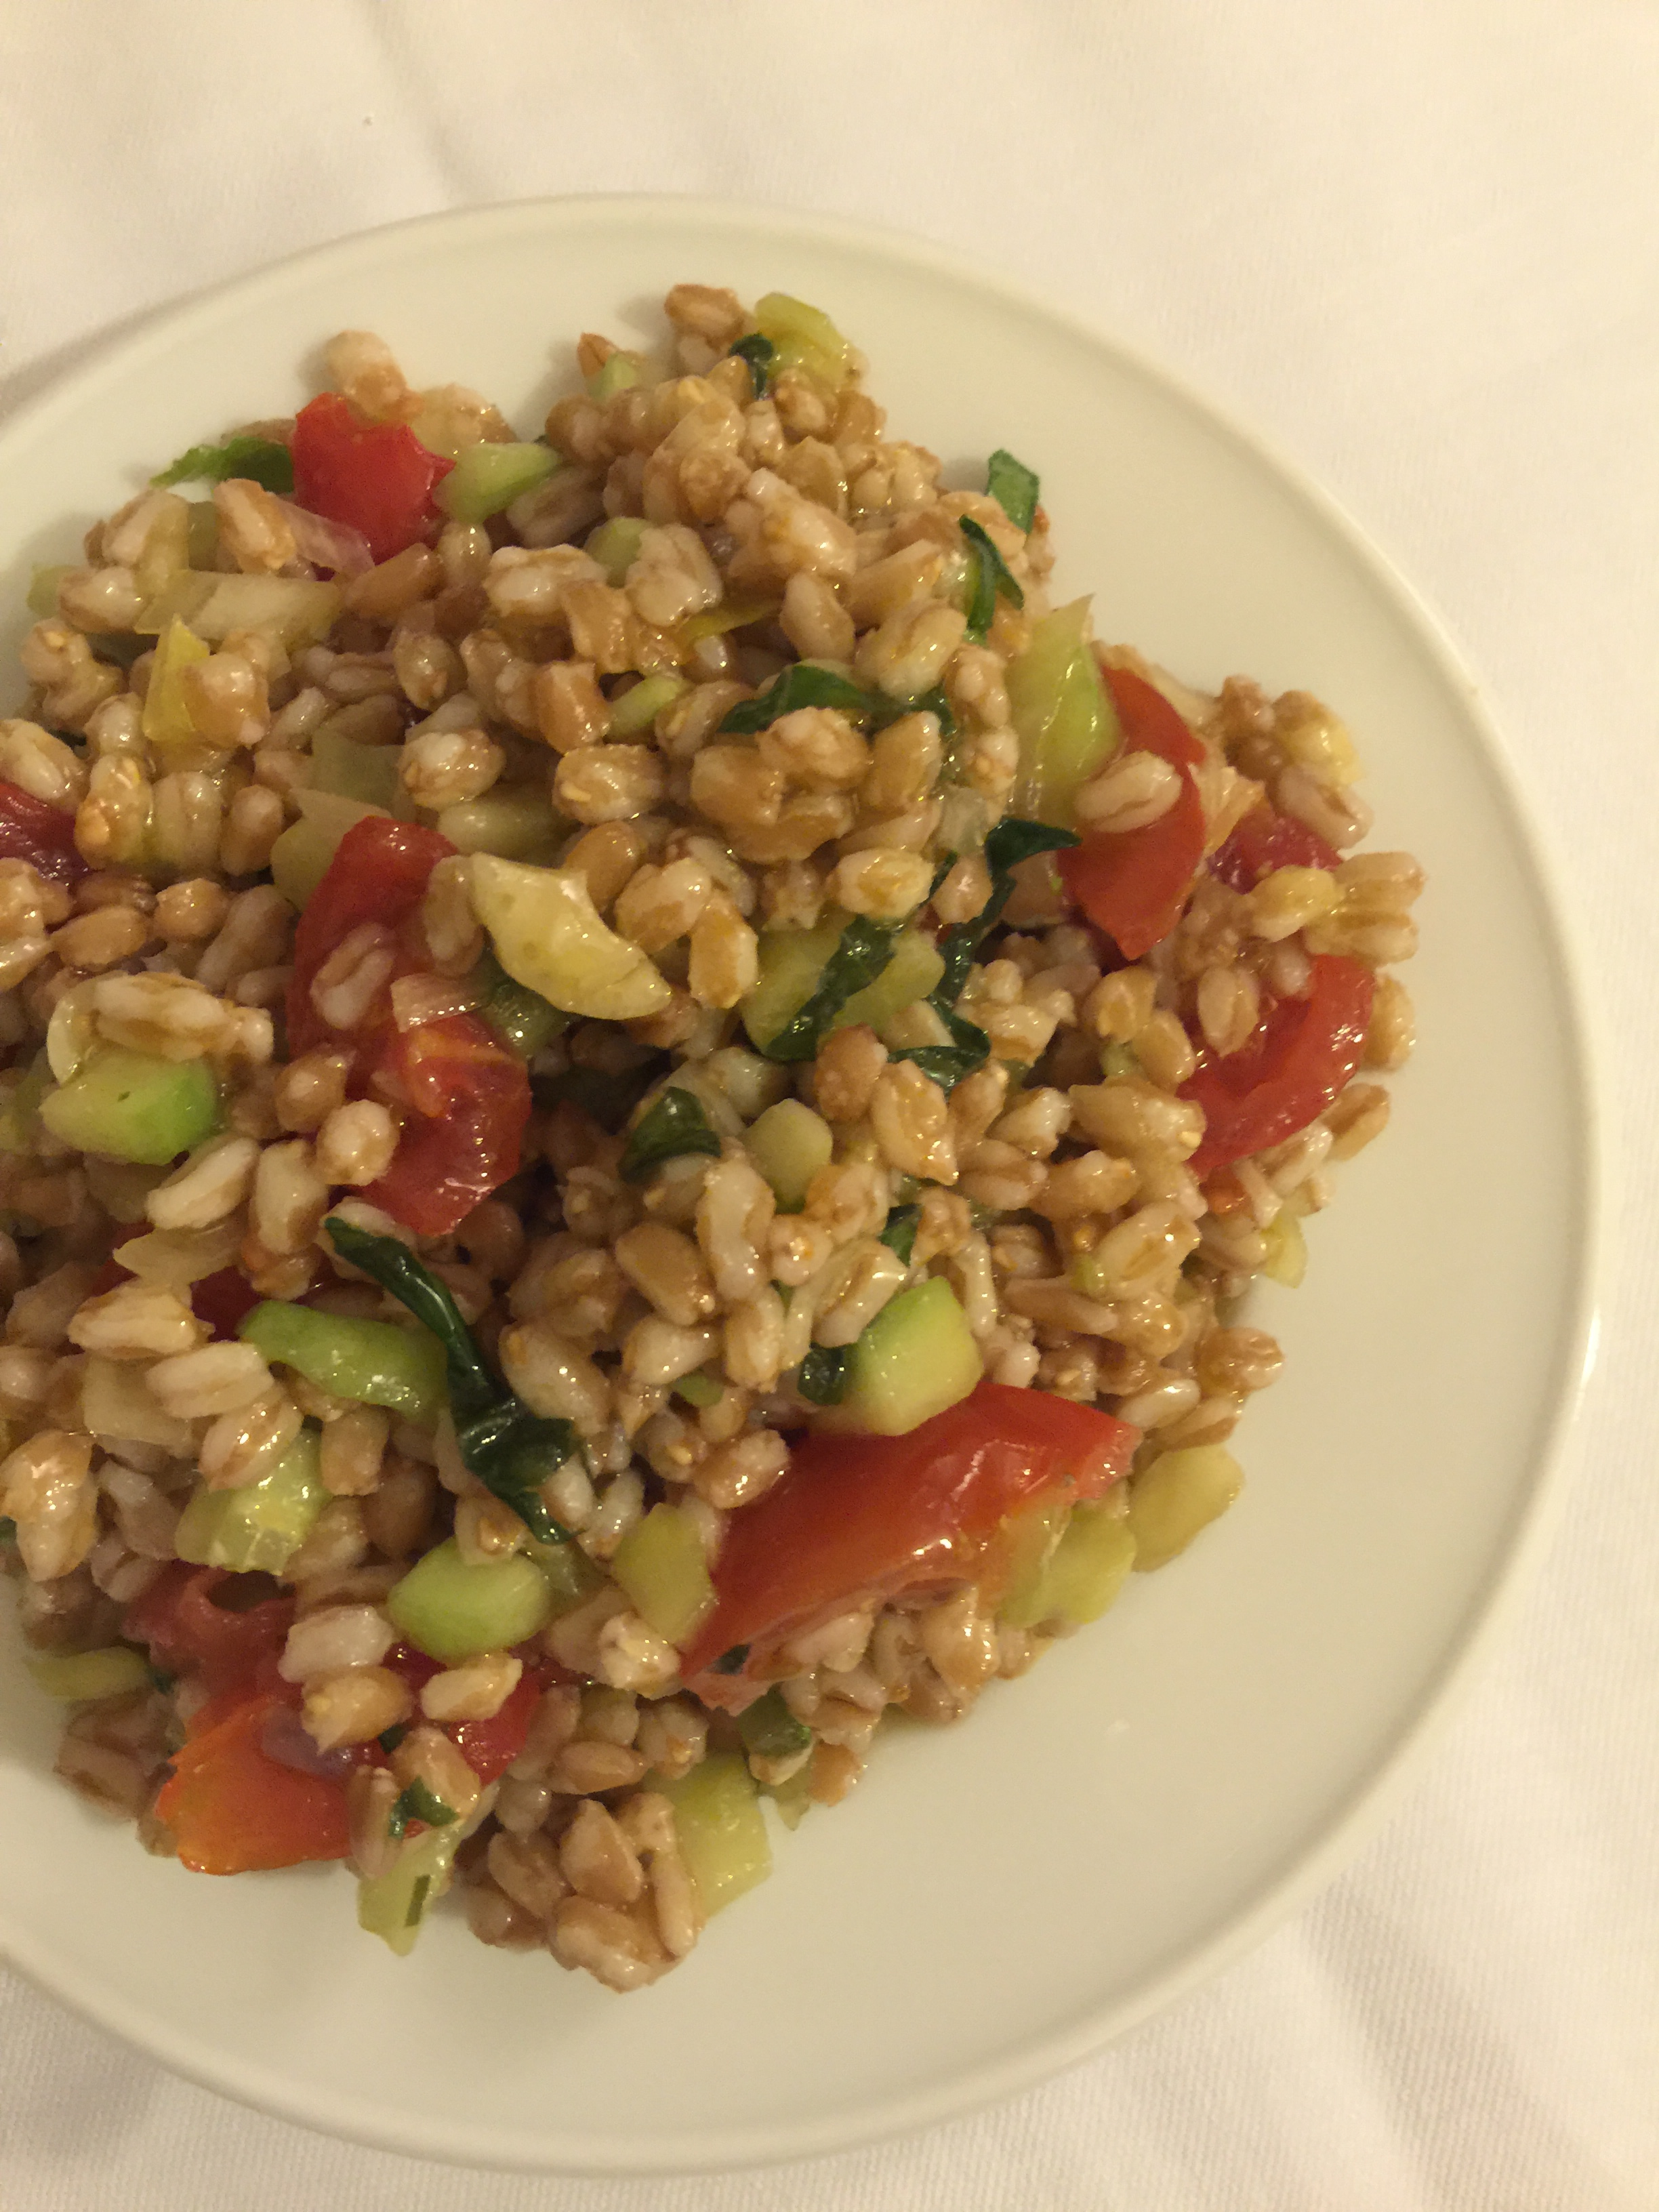 Cracked wheat salad with tomato, cucumber, and olive oil